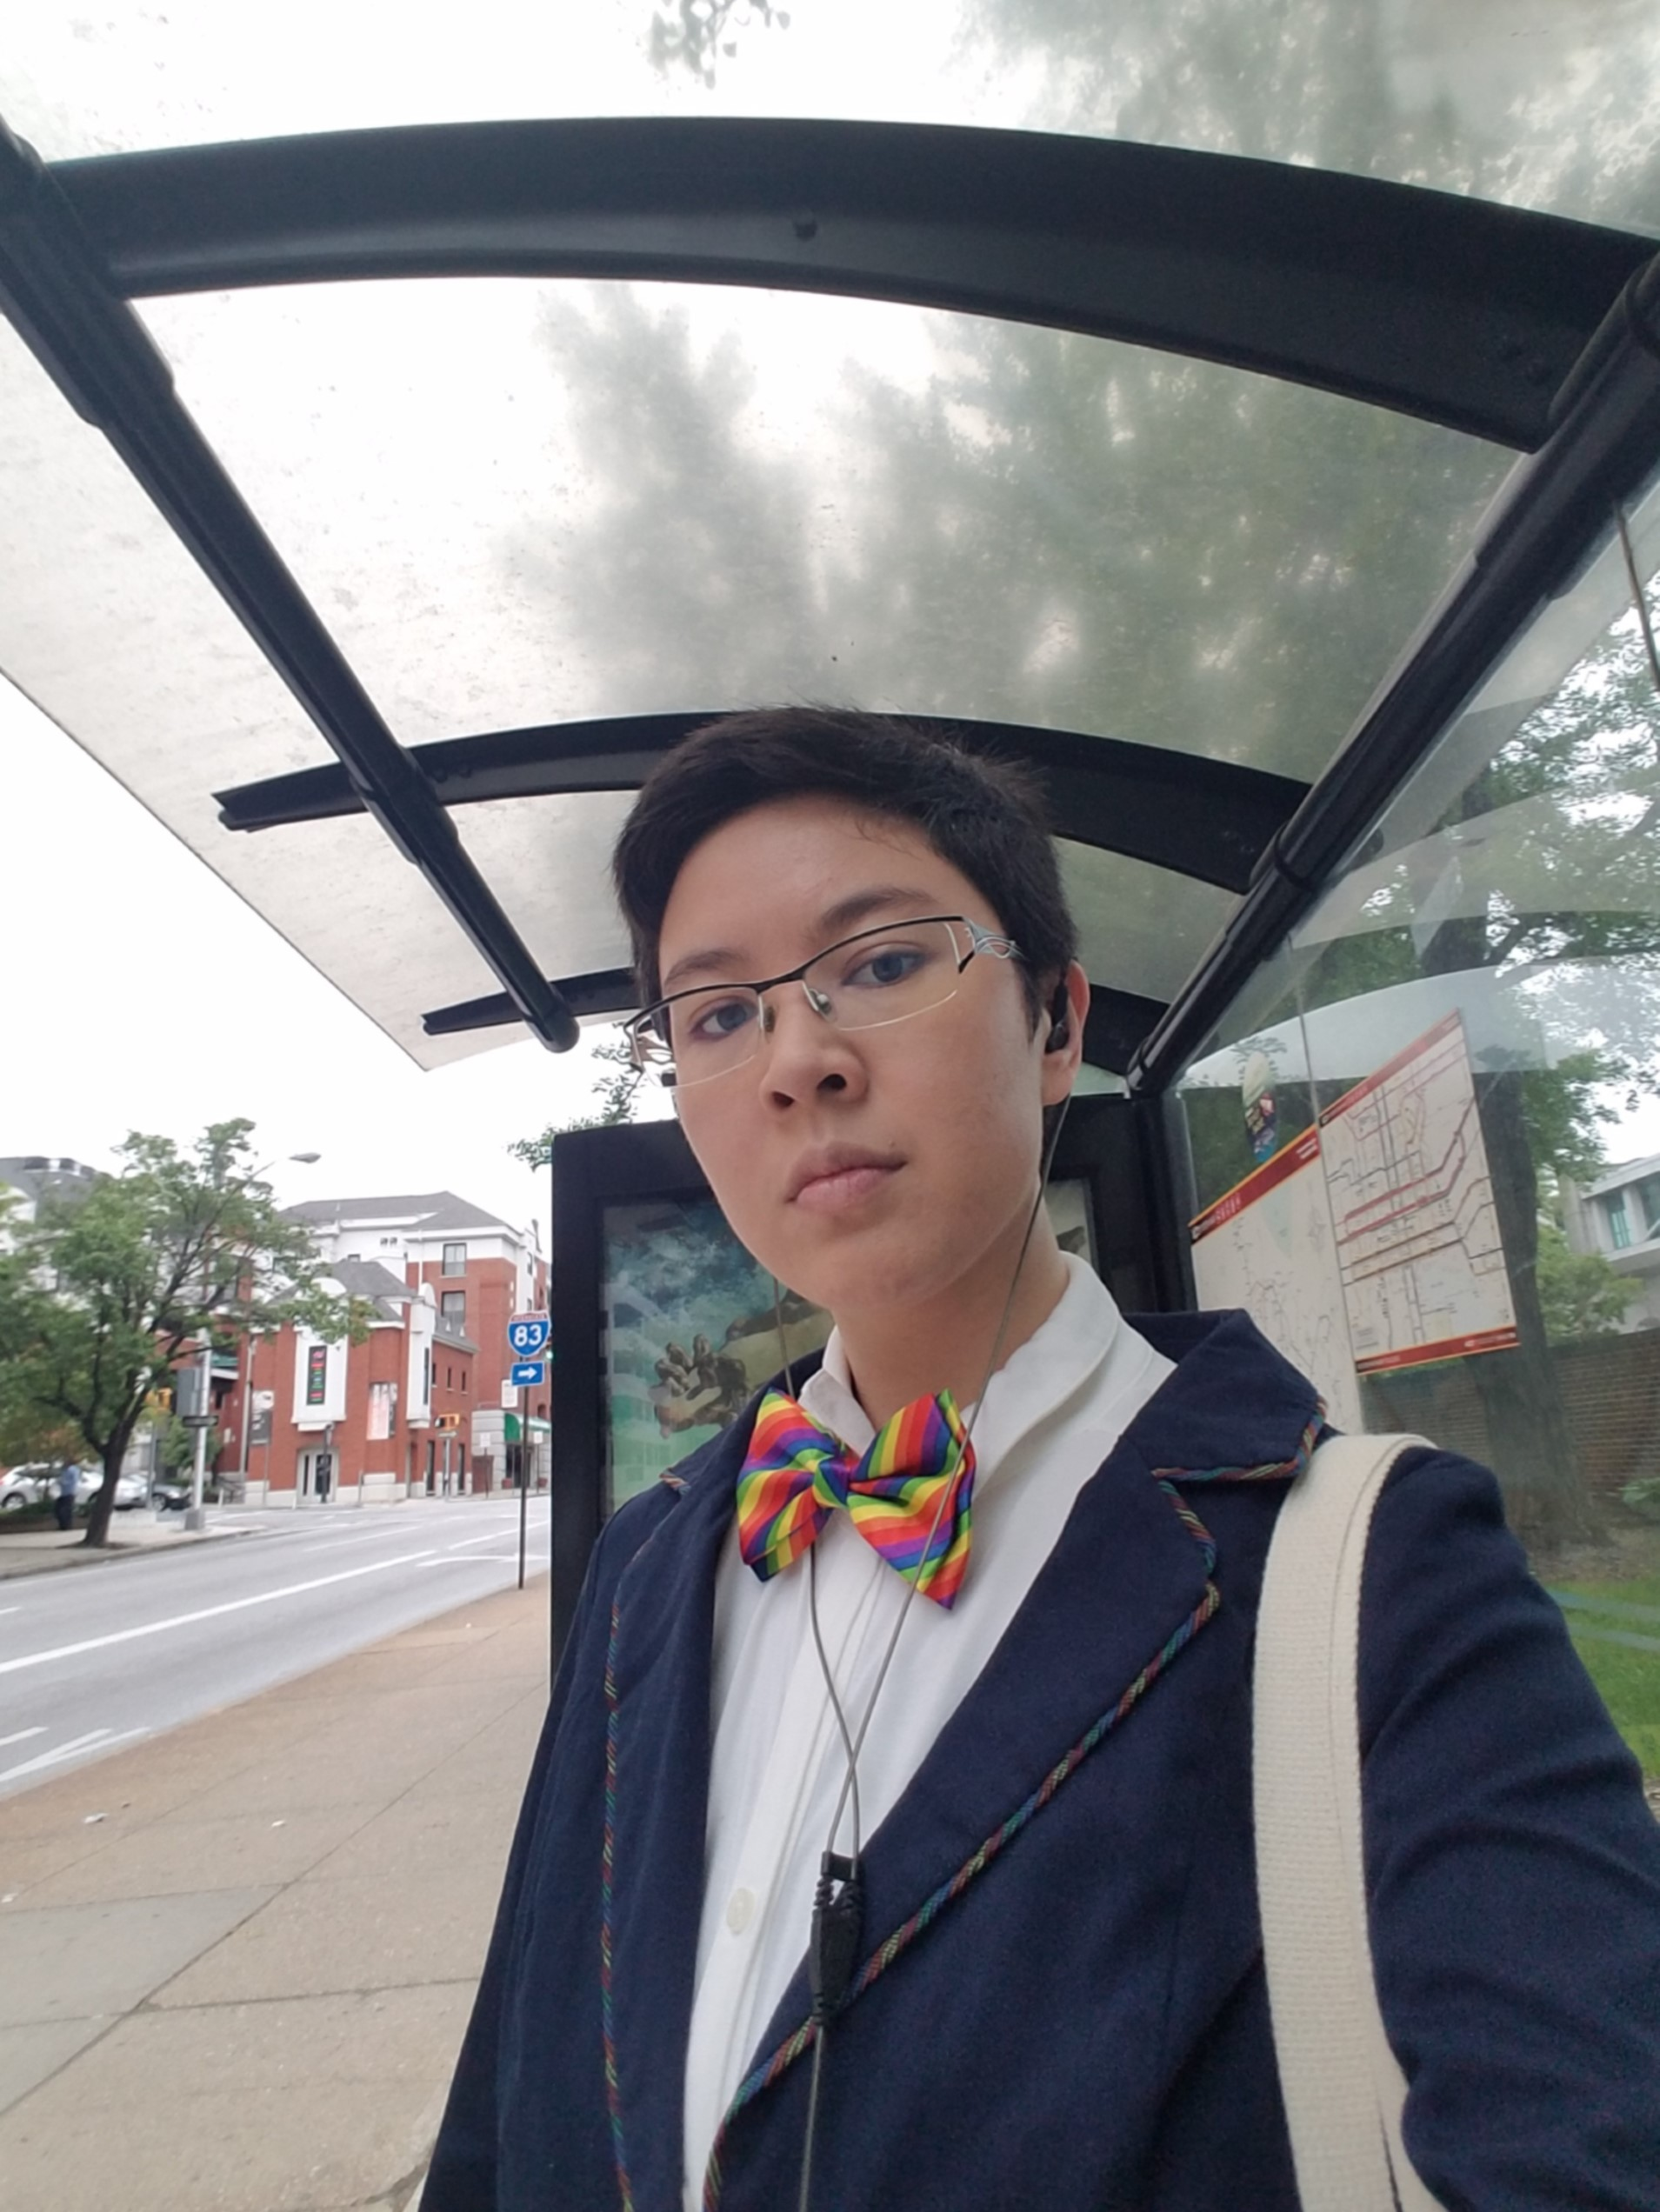 Student takes selfie at bus stop